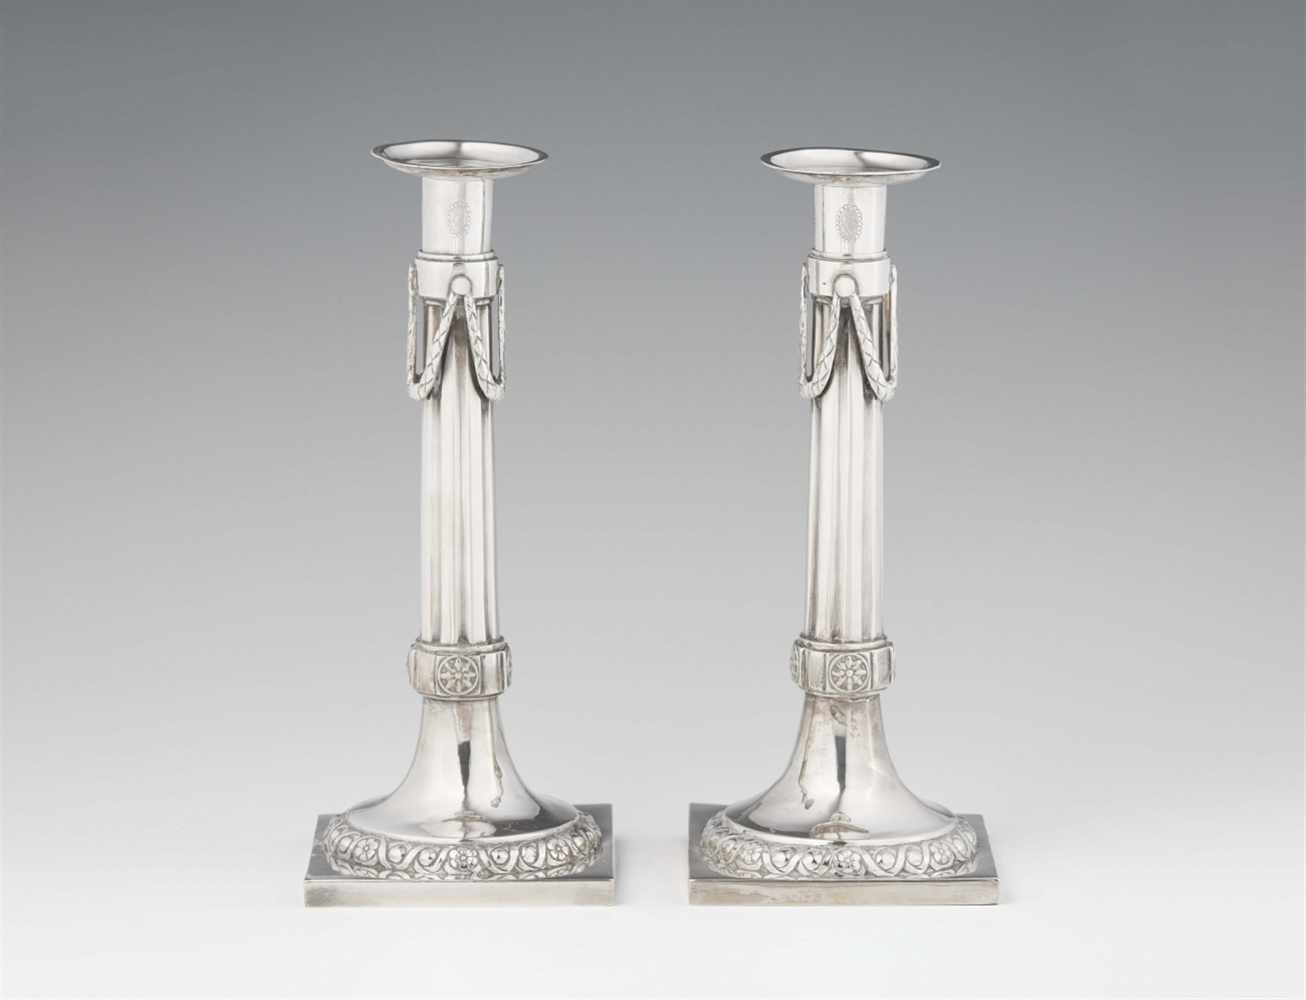 Lot 336 - A pair of Augsburg silver candlesticksFluted shafts on square plinths. H 25 cm, weight 674 g.